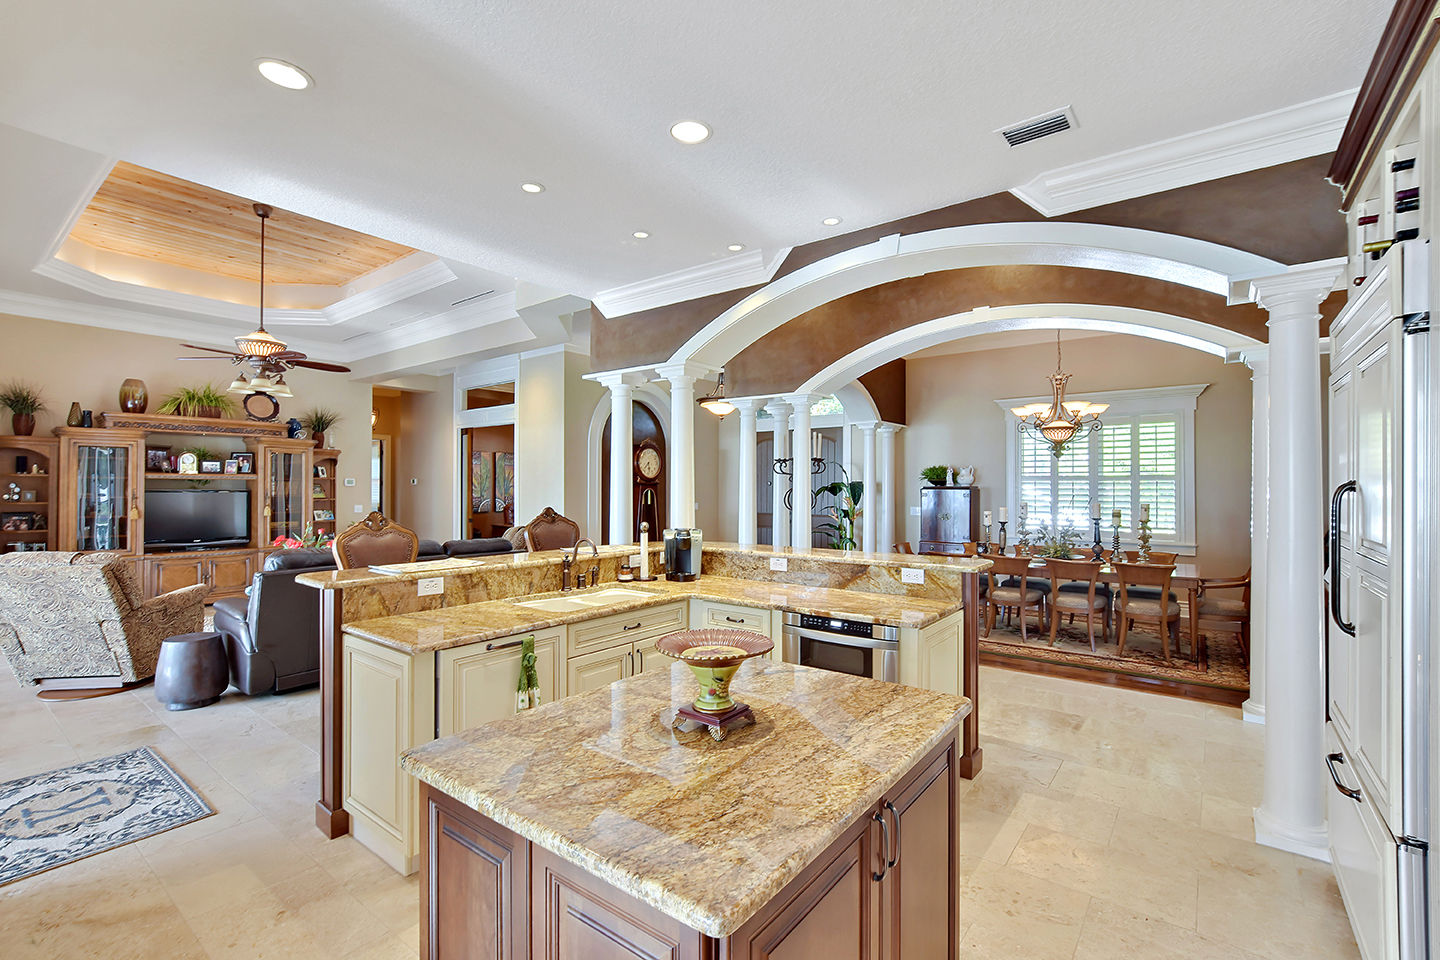 image of kitchen, living room & dining room of luxury home